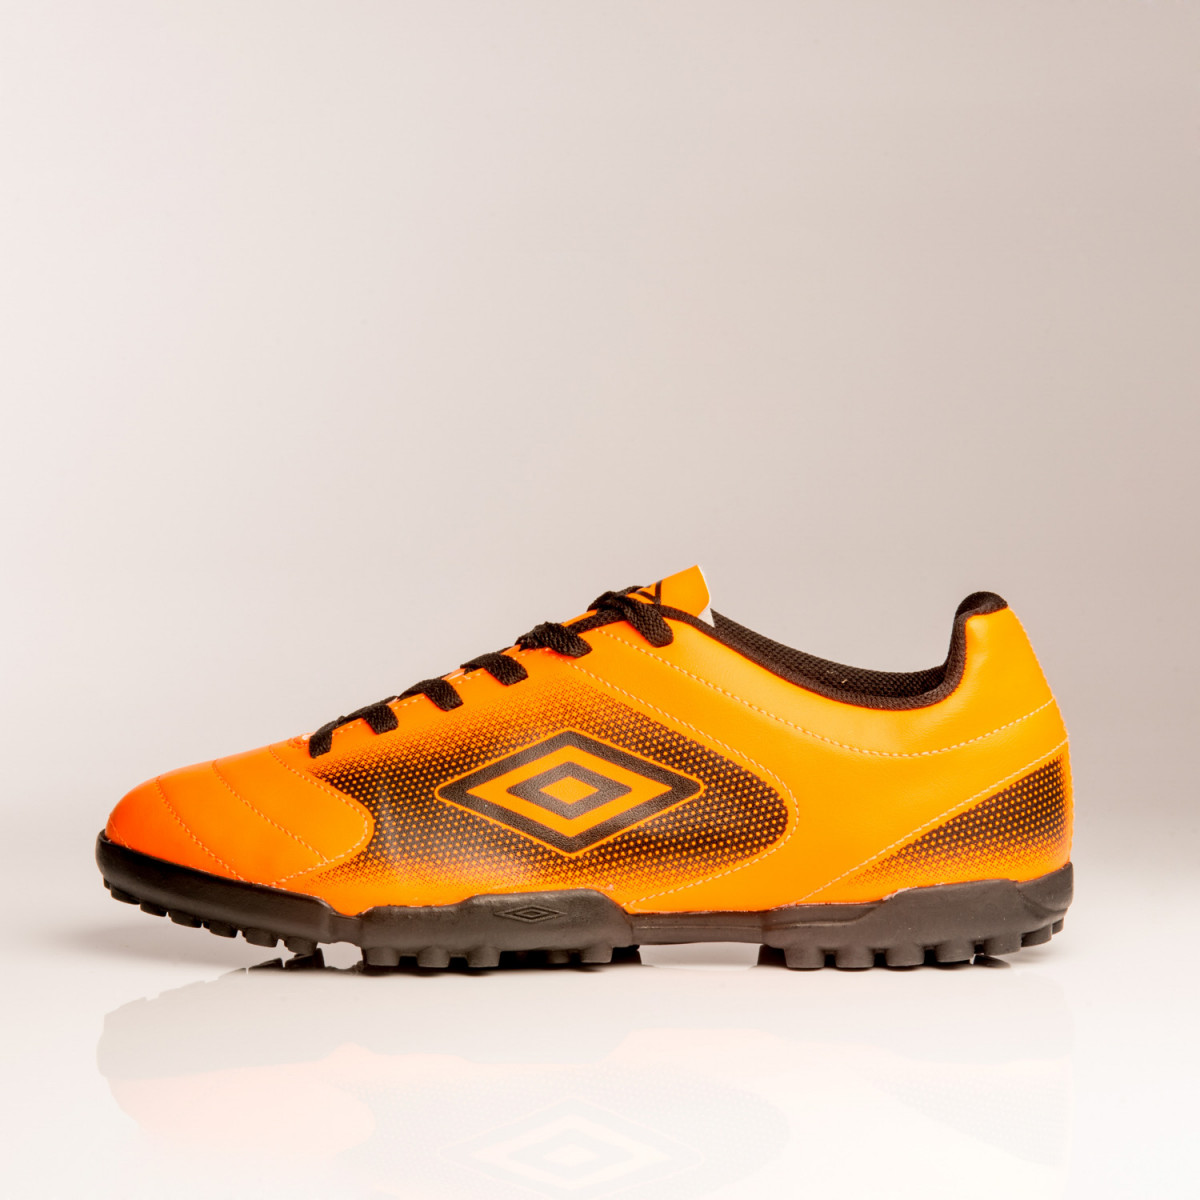 BOTINES UMBRO  SOCIETY STRIKER 2013